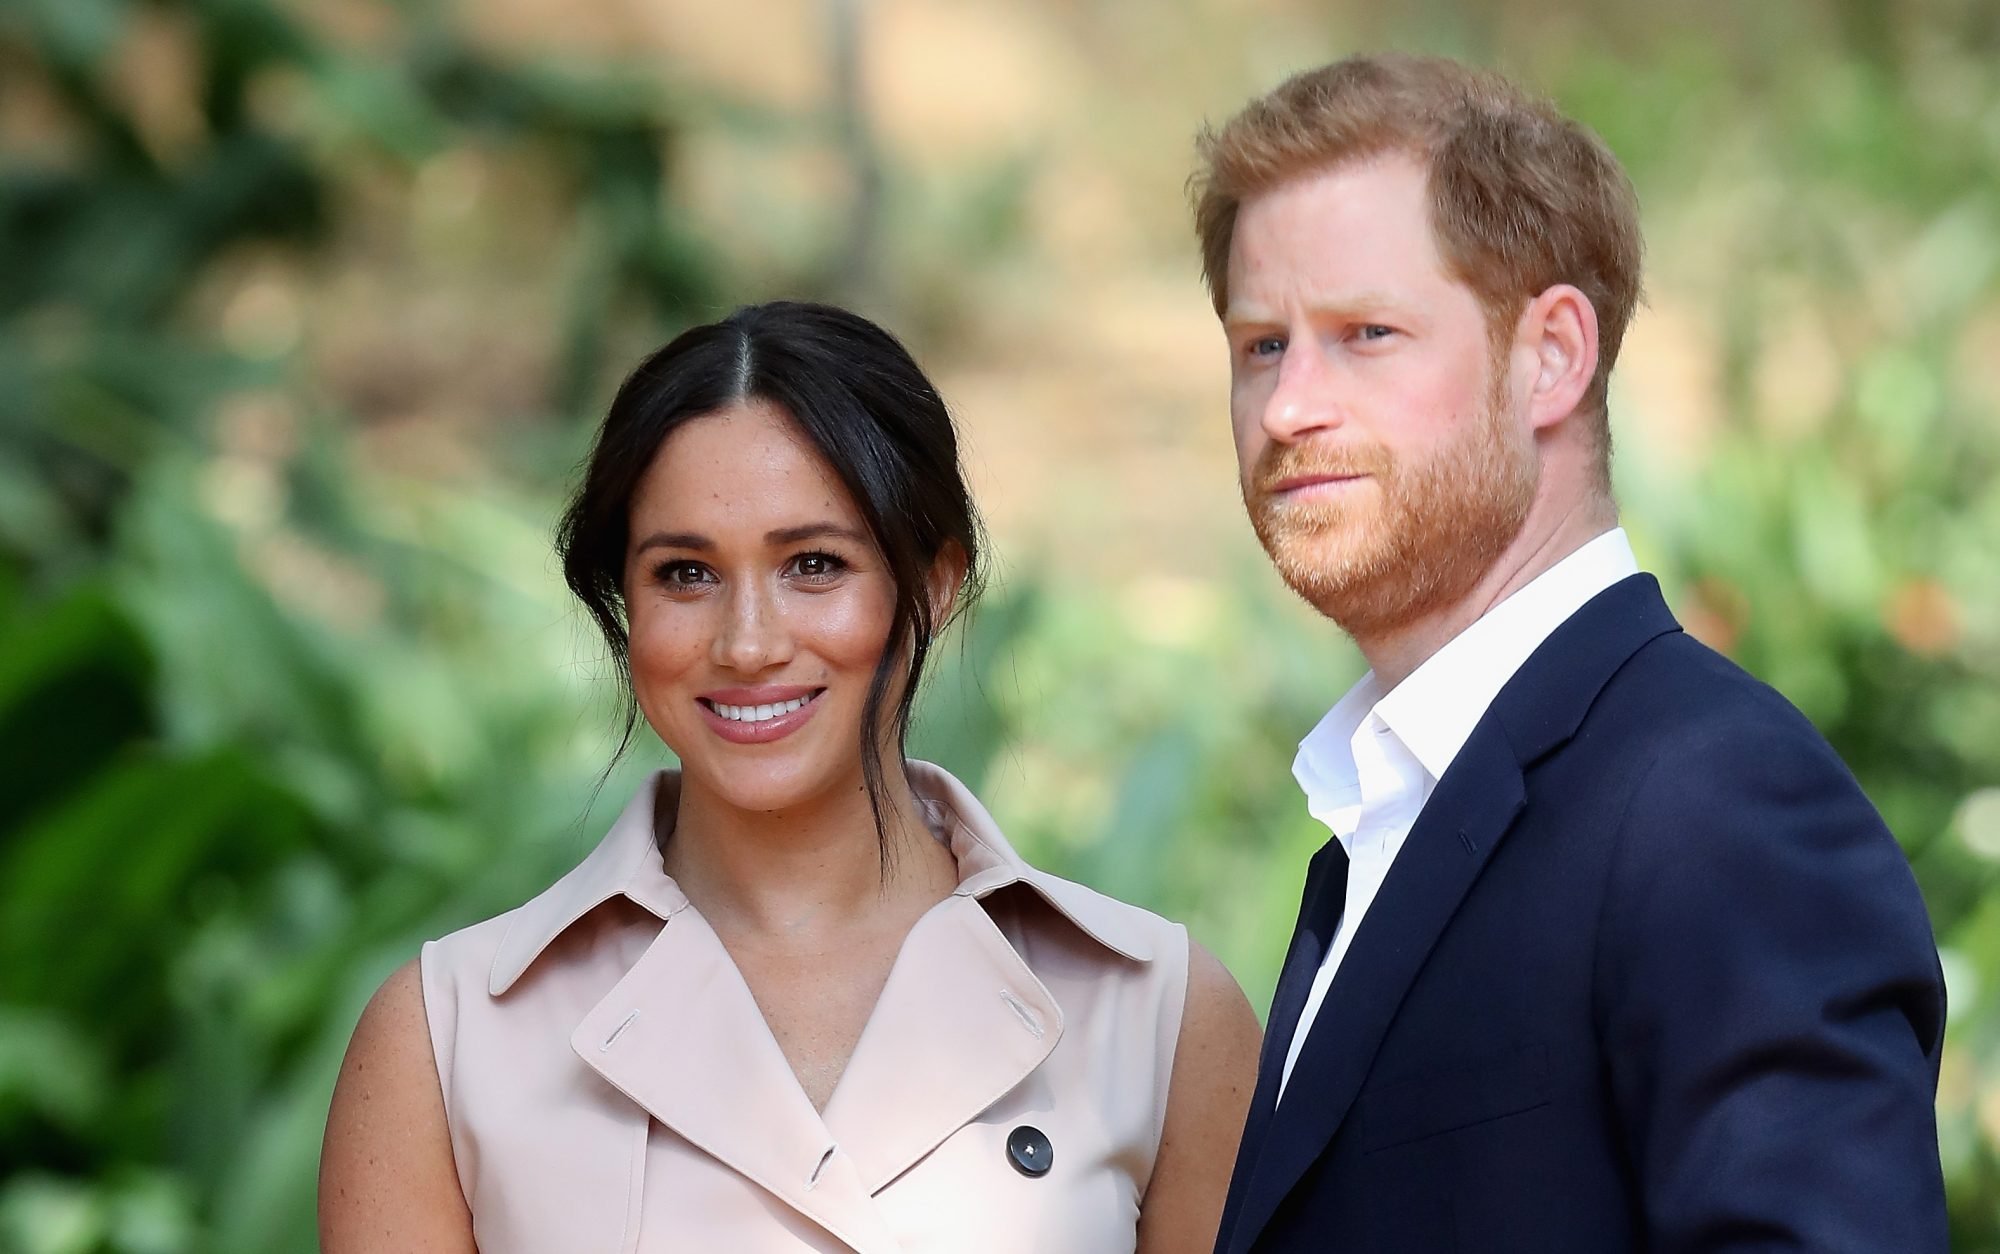 prince-harry-and-meghan-markle-might-welcome-another-baby-soon-friends-say